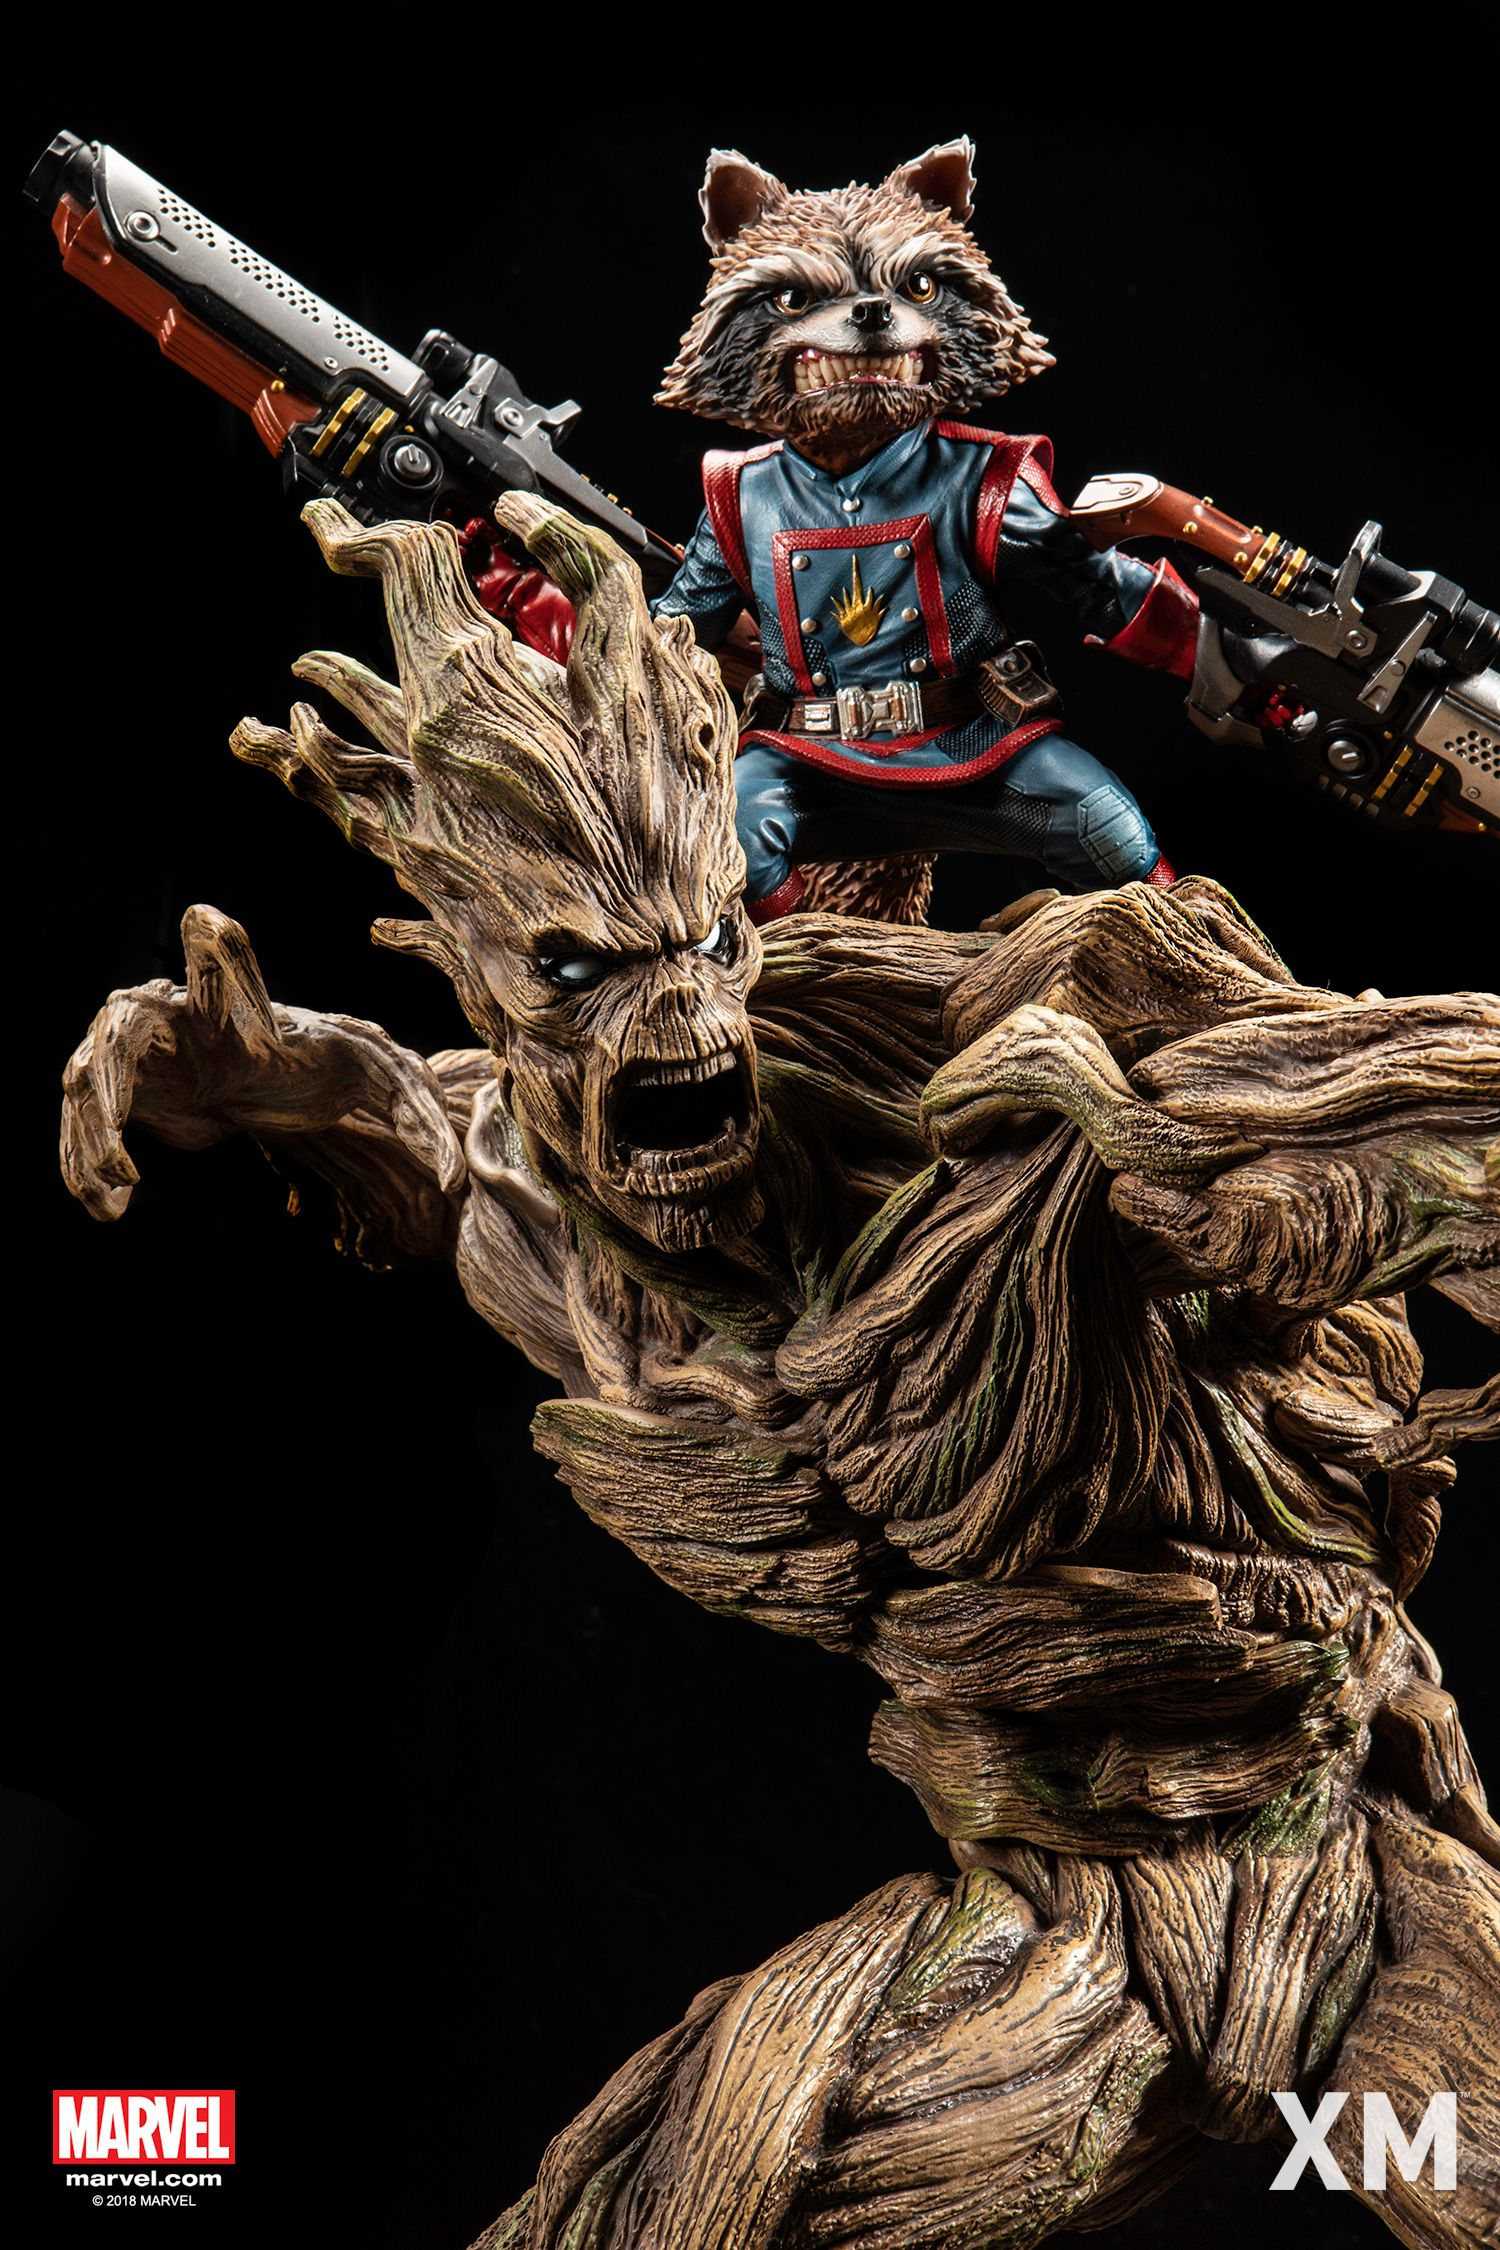 Xm Rocket Groot From The Guardians Of The Galaxy Statue Rocket Raccoon Rocket And Groot